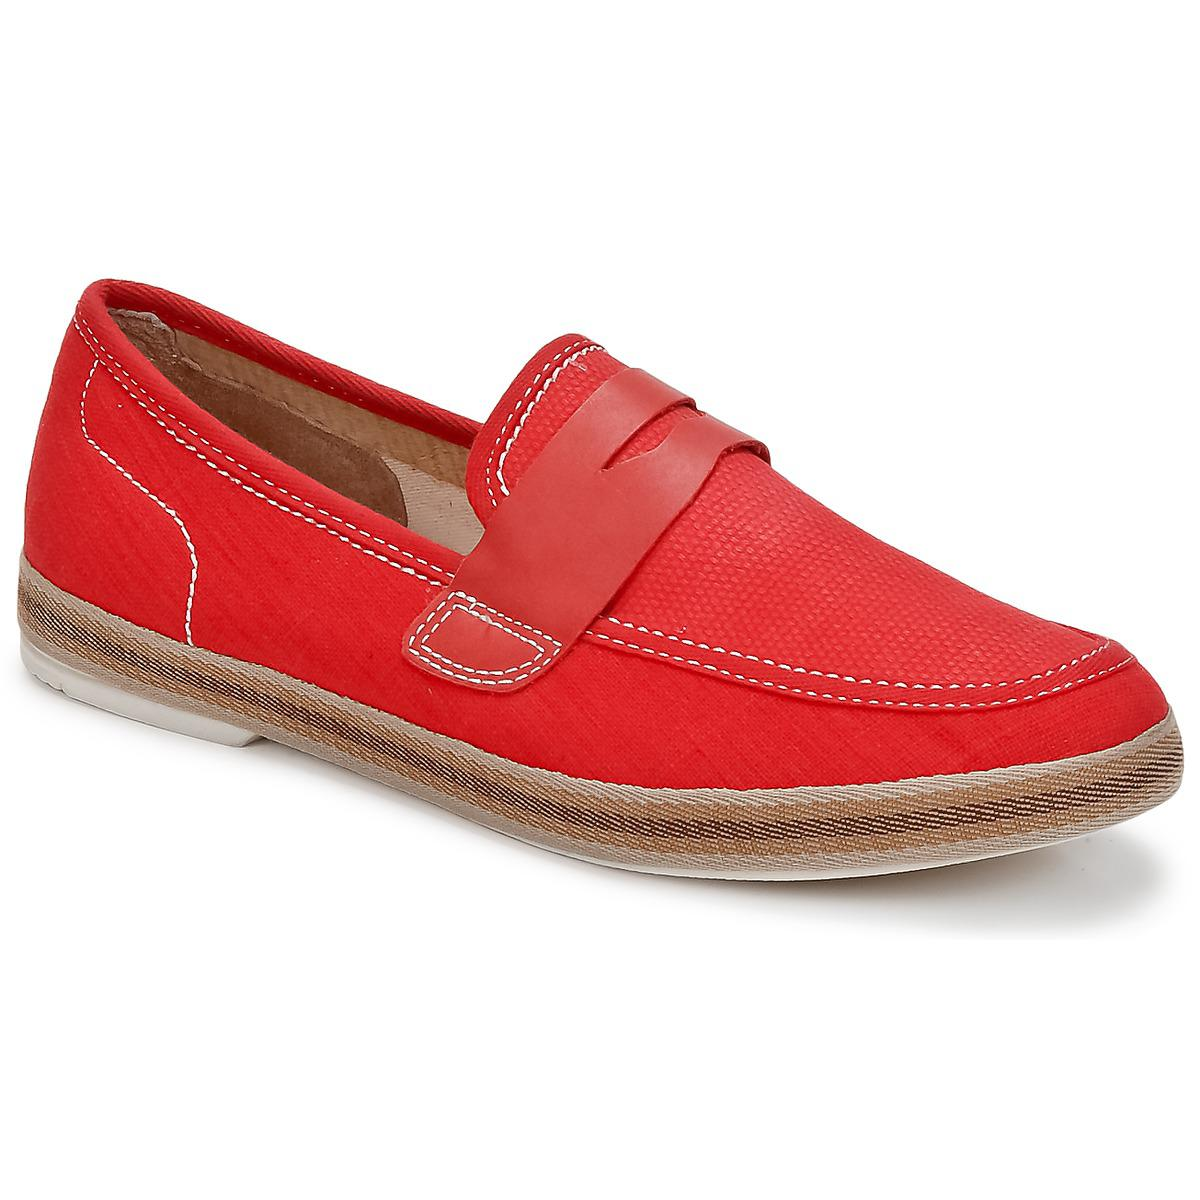 e0abf3e33ef Hudson Jeans Antara Loafers   Casual Shoes in Red for Men - Lyst